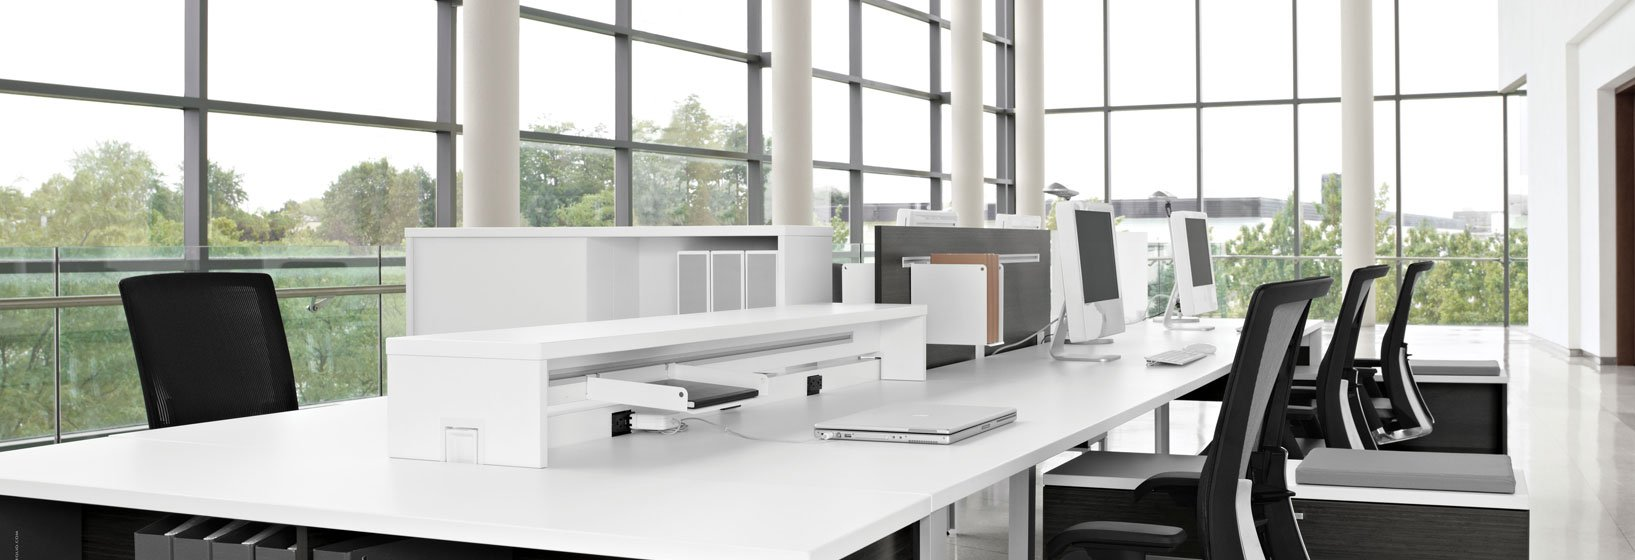 office furniture workspace solutions rightsize facility Sprint Buyback office furniture buyback